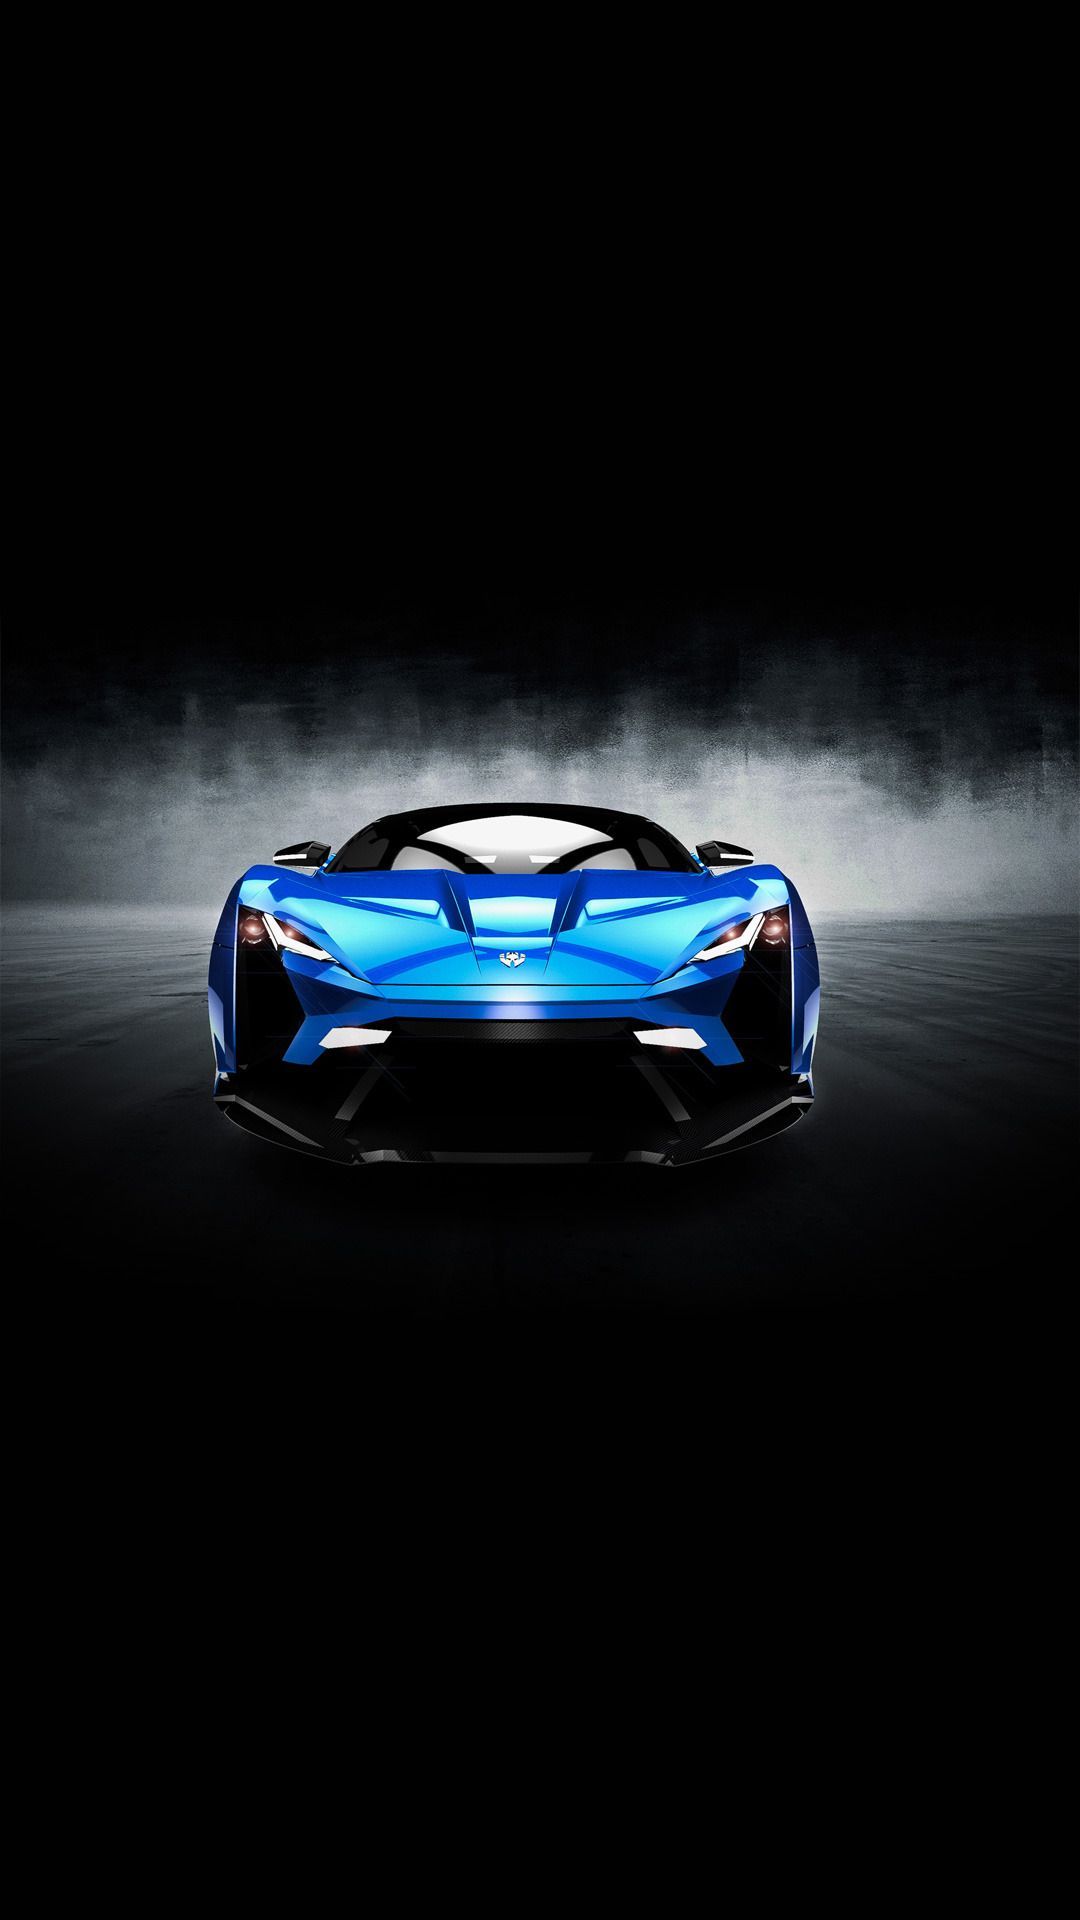 1080x1920 HD Car Wallpapers 2017: Amazon.ca: Appstore for Android